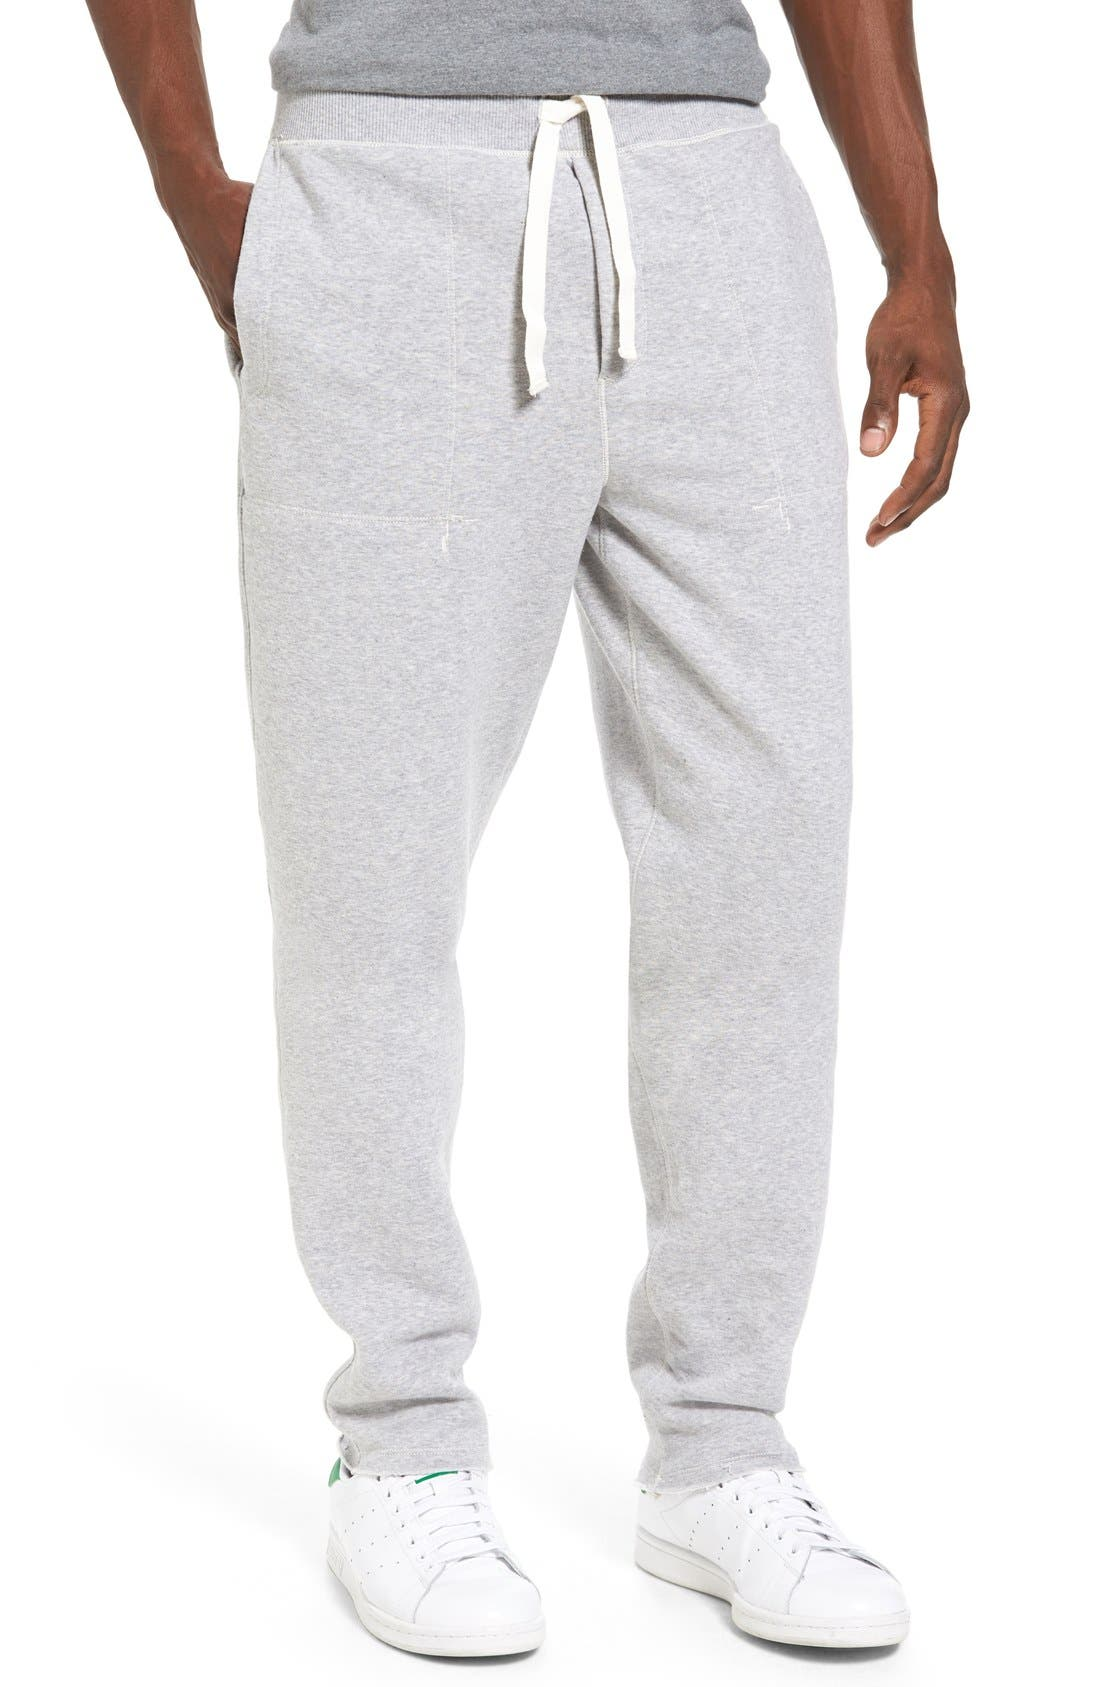 ORIGINAL PAPERBACKS Week Off Slim Fit Sweatpants